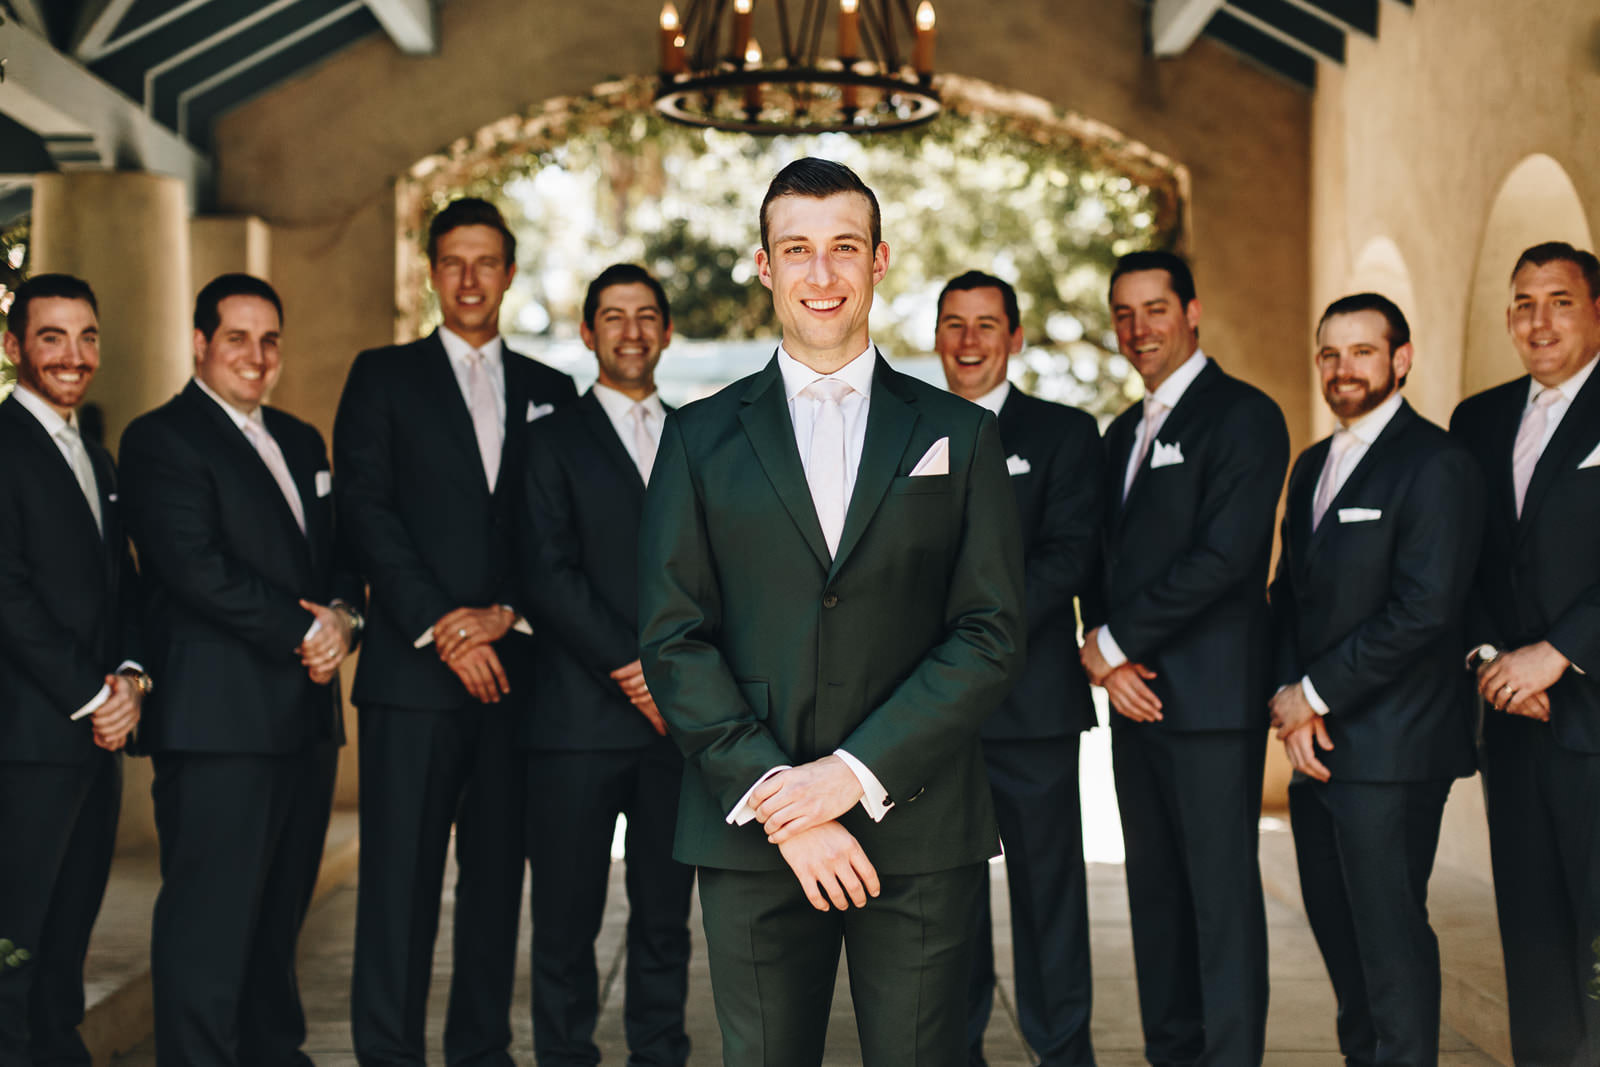 Close up of the groom with his groomsmen standing behind him.